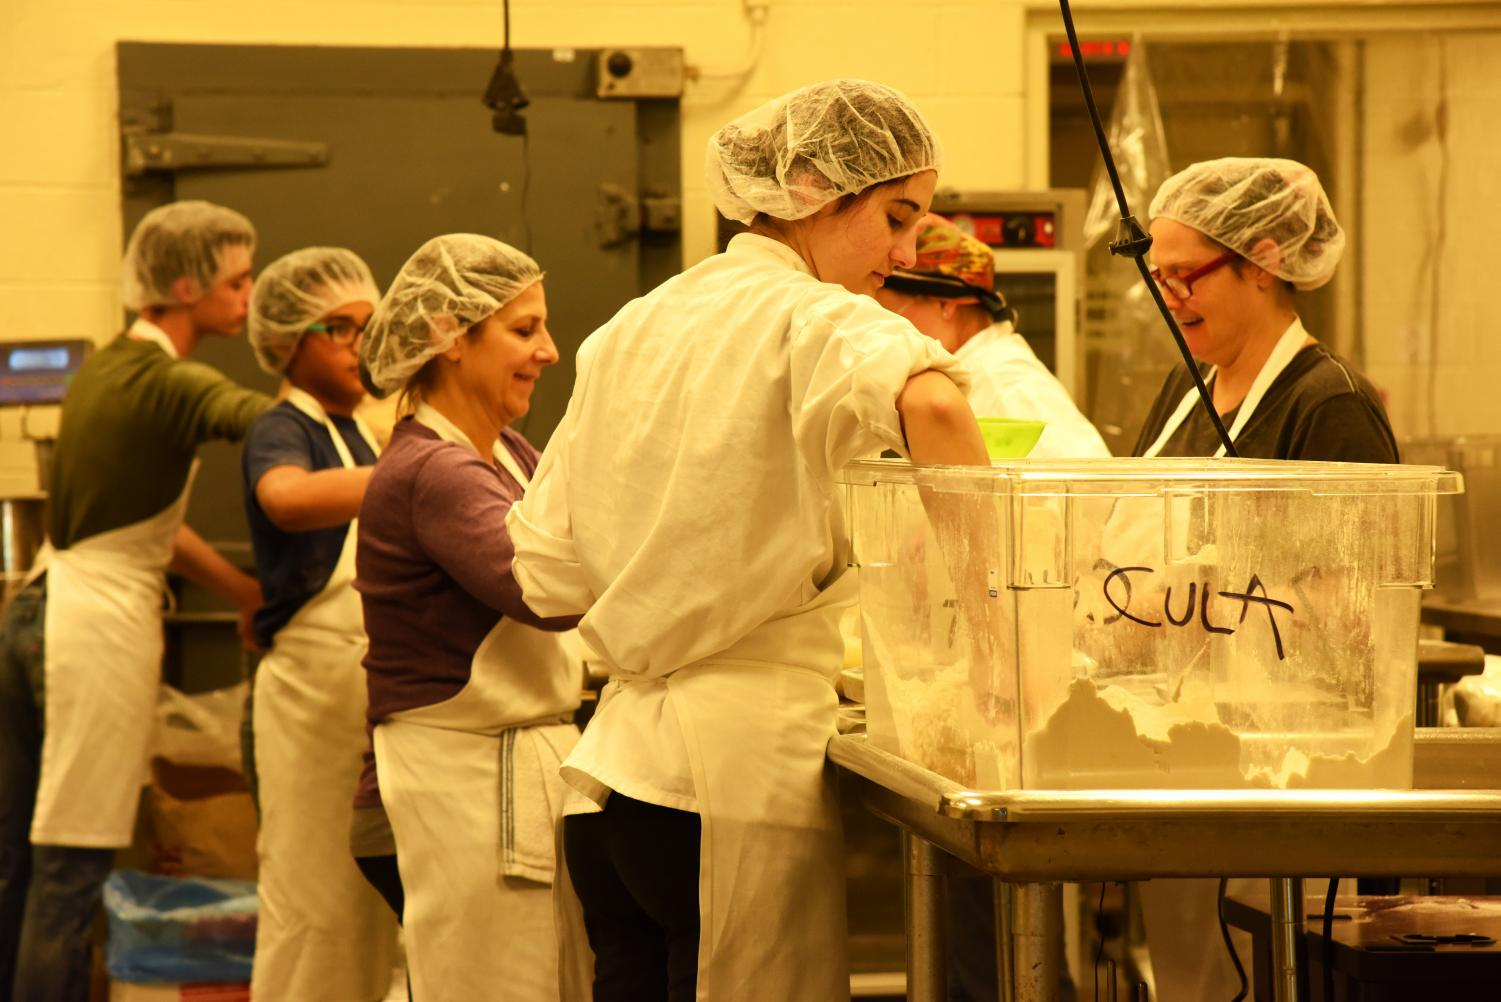 A crew of six, including Cecilia Ciarlo (middle left) pack the baking mix bags in the Foodworks Alliance kitchen on Nov. 30.